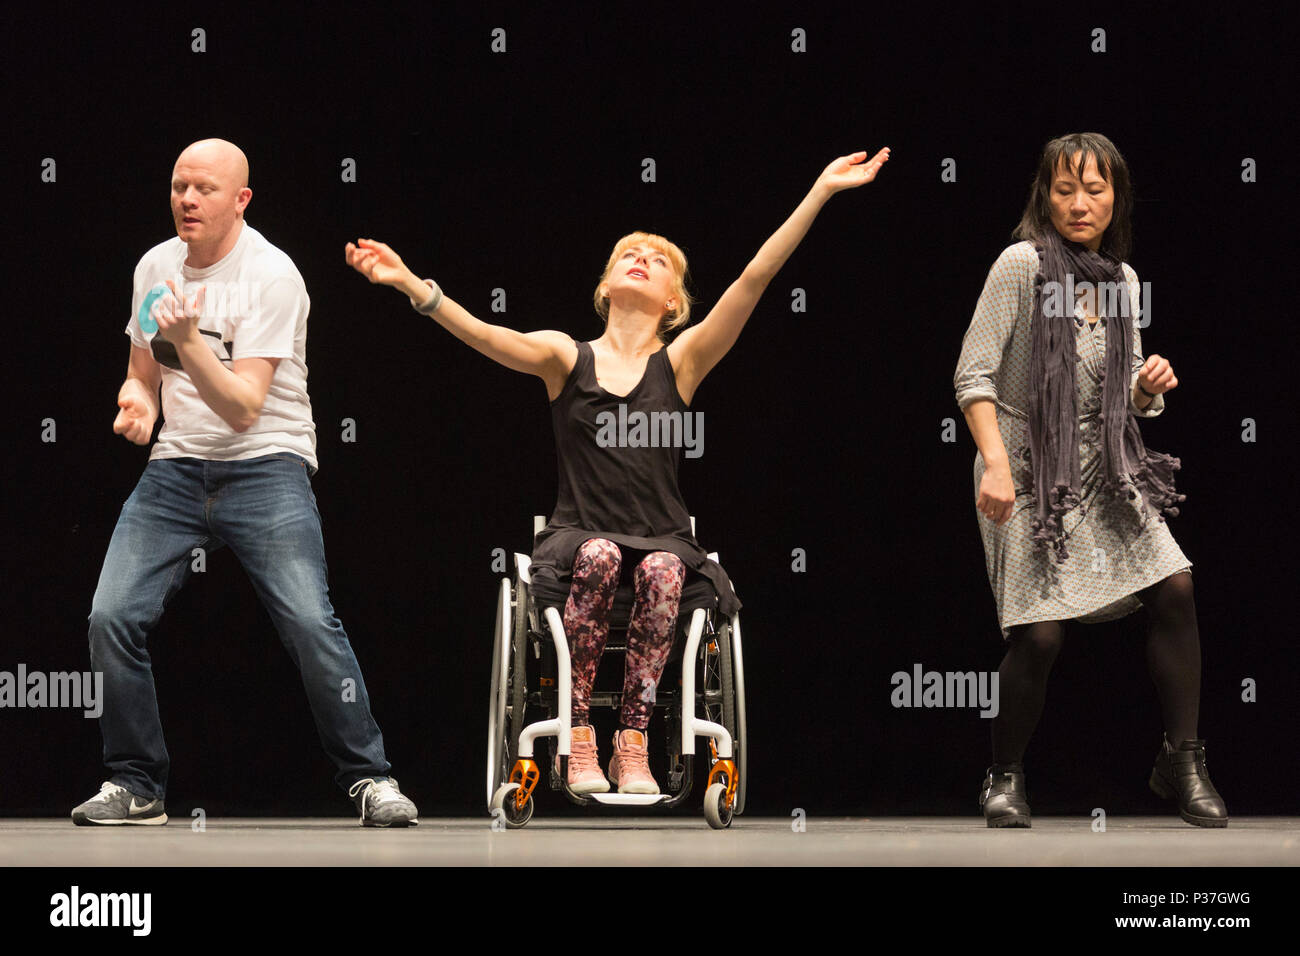 London, UK. 20 March 2015.  L-R: Gary Clarke. Suzie Birchwood and Jia-Yu Corti. Sadler's Wells presents a weekend of inclusive dance from 20 to 22 March 2015. Candoco Dance Company, a contemporary dance comapny of disabled and non-disabled performers presents a restaging of Jerome Bel's award-winning The Show Must Go On. The weekend also includes the final performances of the inaugural year of the Sadler's Wells =dance series, a presentation of inclusive dance by both established and emerging deaf and disabled artists in the Lilian Baylis Studio. Stock Photo